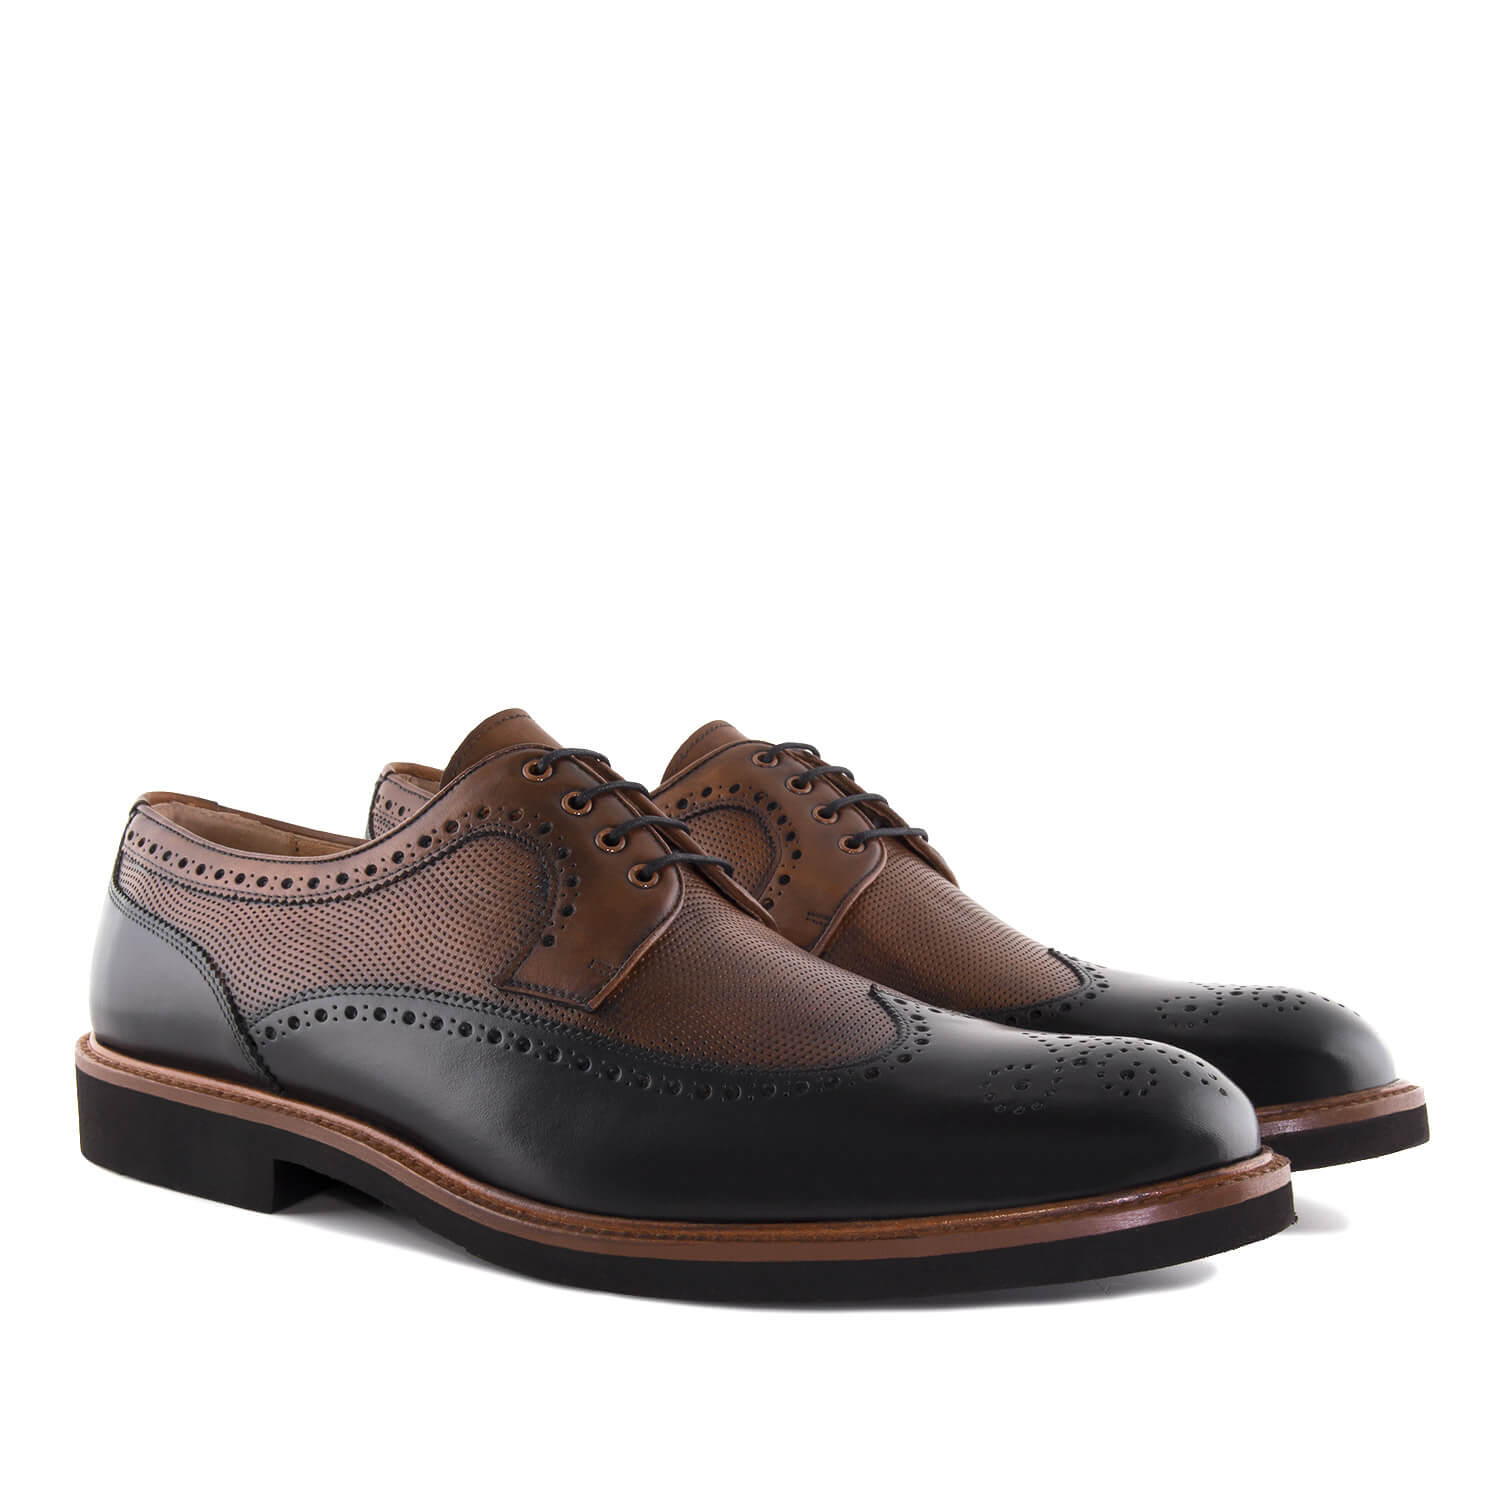 Oxford Shoes in Black & Brown Leather